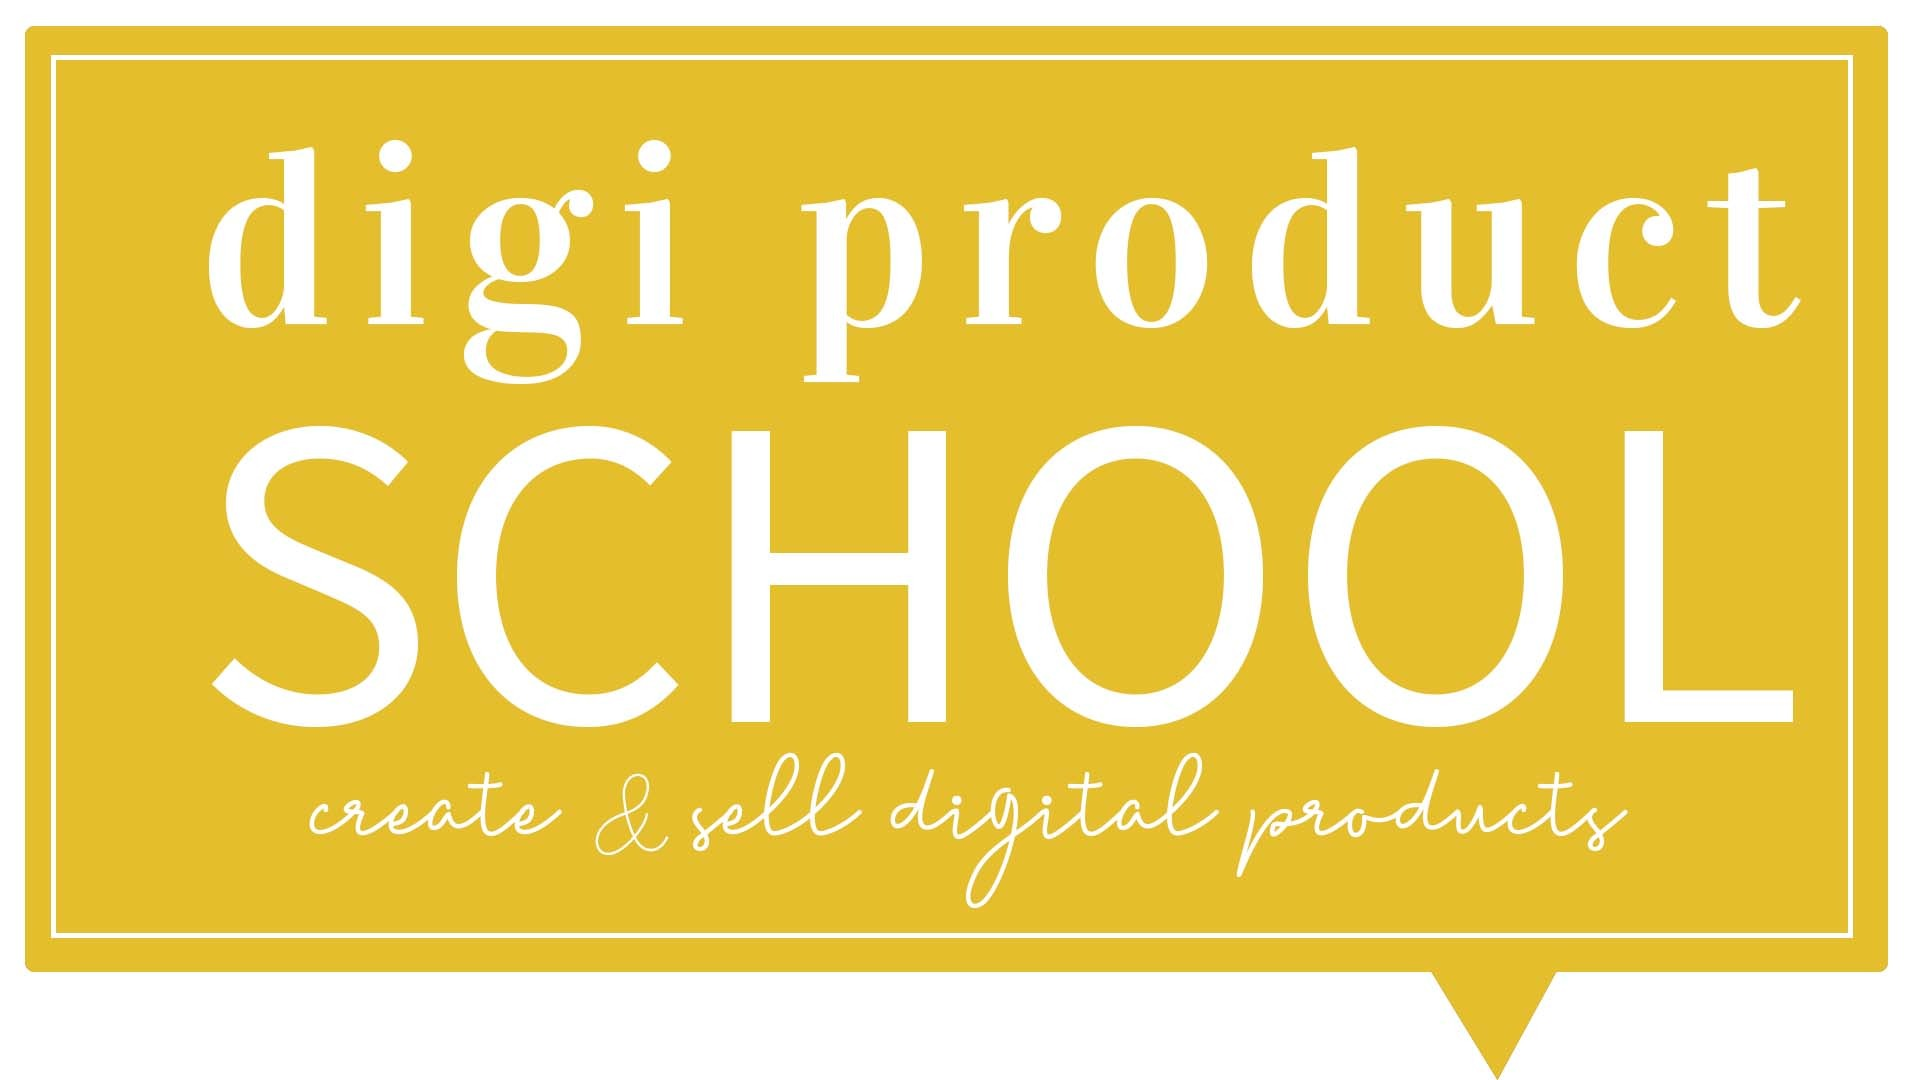 dig product school | learn how to create digital products